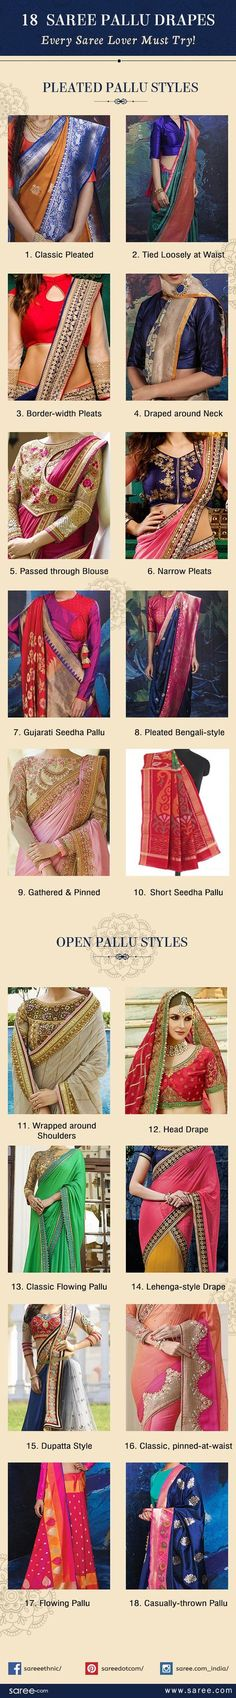 Add extra oomph to your saree style with these gorgeous saree pallu drapes. Pick practical, easy to carry ones or fancy, grand saree pallu draping styles. Trendy Sarees, Stylish Sarees, Saree Draping Styles, Saree Styles, Blouse Styles, Saree Blouse Patterns, Saree Blouse Designs, Indian Attire, Indian Wear